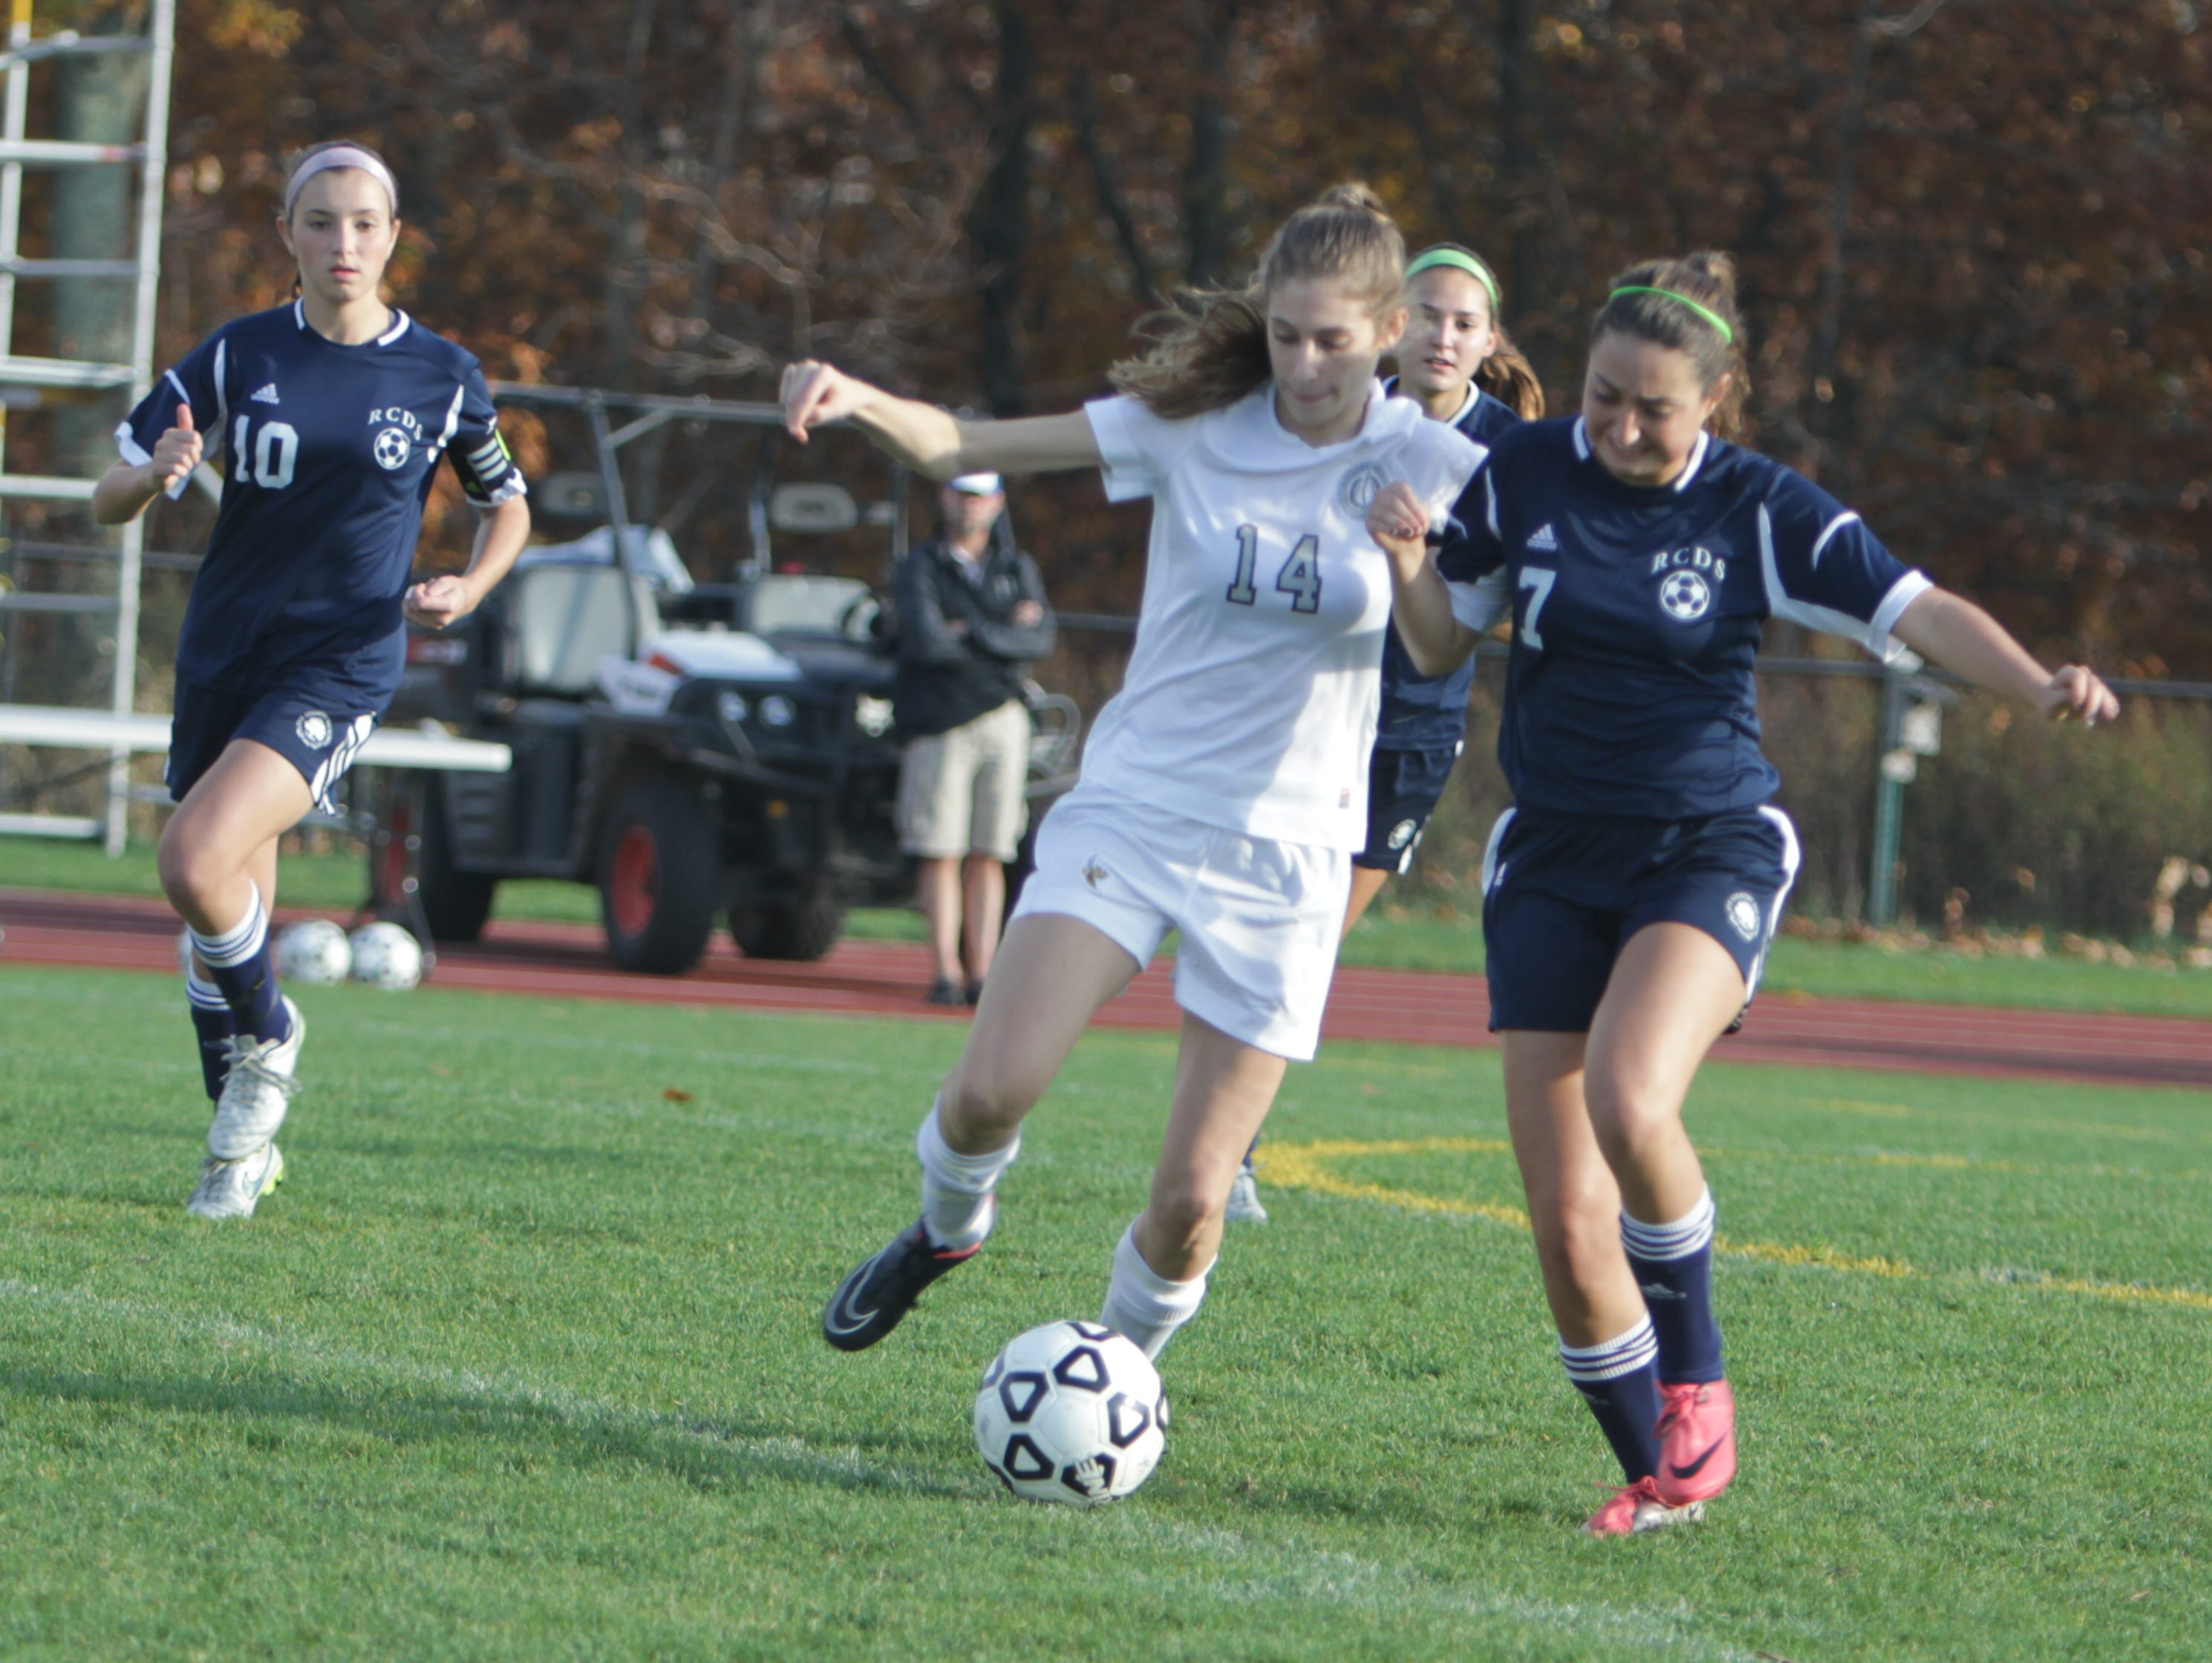 Hackley's Luisa Stalman (14) and Rye Country Day's Nicola Leake battle for possession of the ball during a NYSAIS semifinal match at the Hackley School on Friday, November 6th, 2015. Hackley won 3-1.